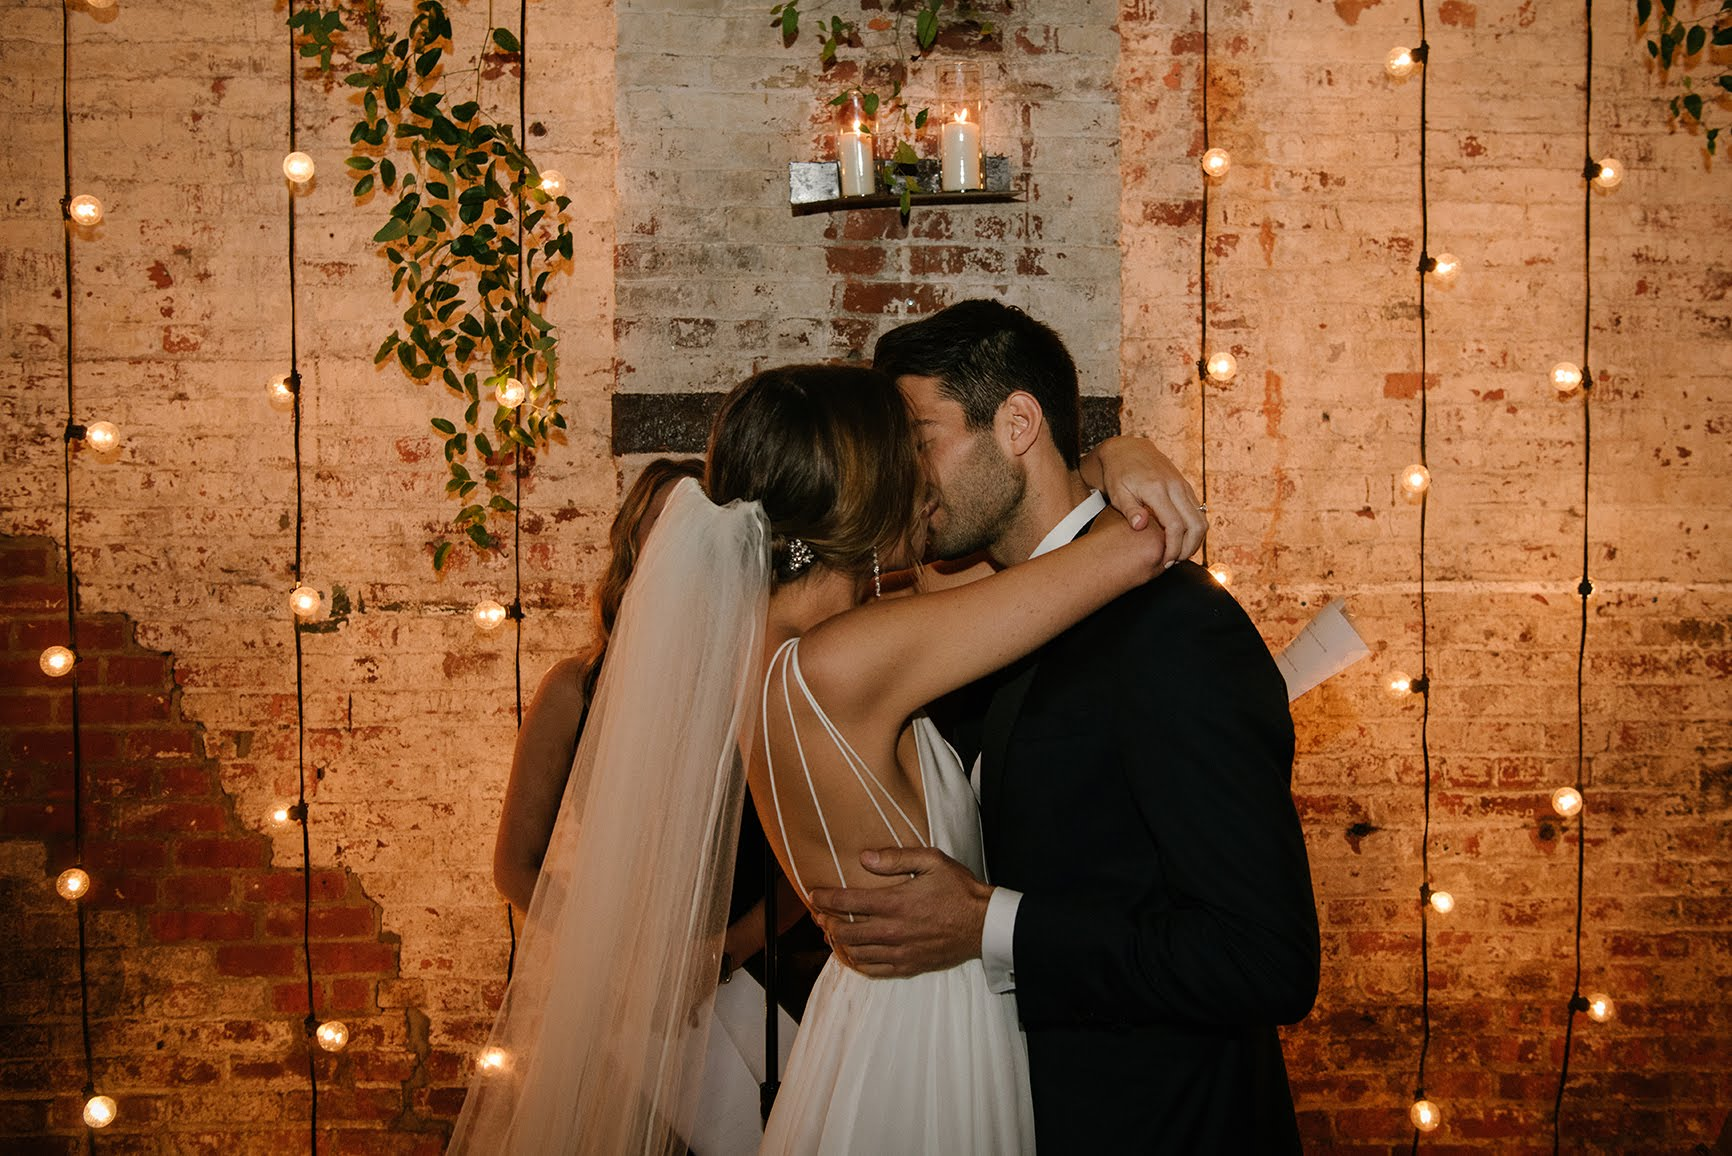 Kristi & David would describe their wedding aesthetic as industrial minimalist - they embraced the 'less is more' mindset. The Green Building is a raw, industrial warehouse with exposed brick walls and high, open ceilings. The couple incorporated string lighting, suspended greenery, and copper accents. The reception also had a non-traditional approach, with lounge seating that encouraged guests to move around the room, mingle, & dance. The night was capped off with churros (instead of wedding cake) and an empanada food truck for late-night eats.